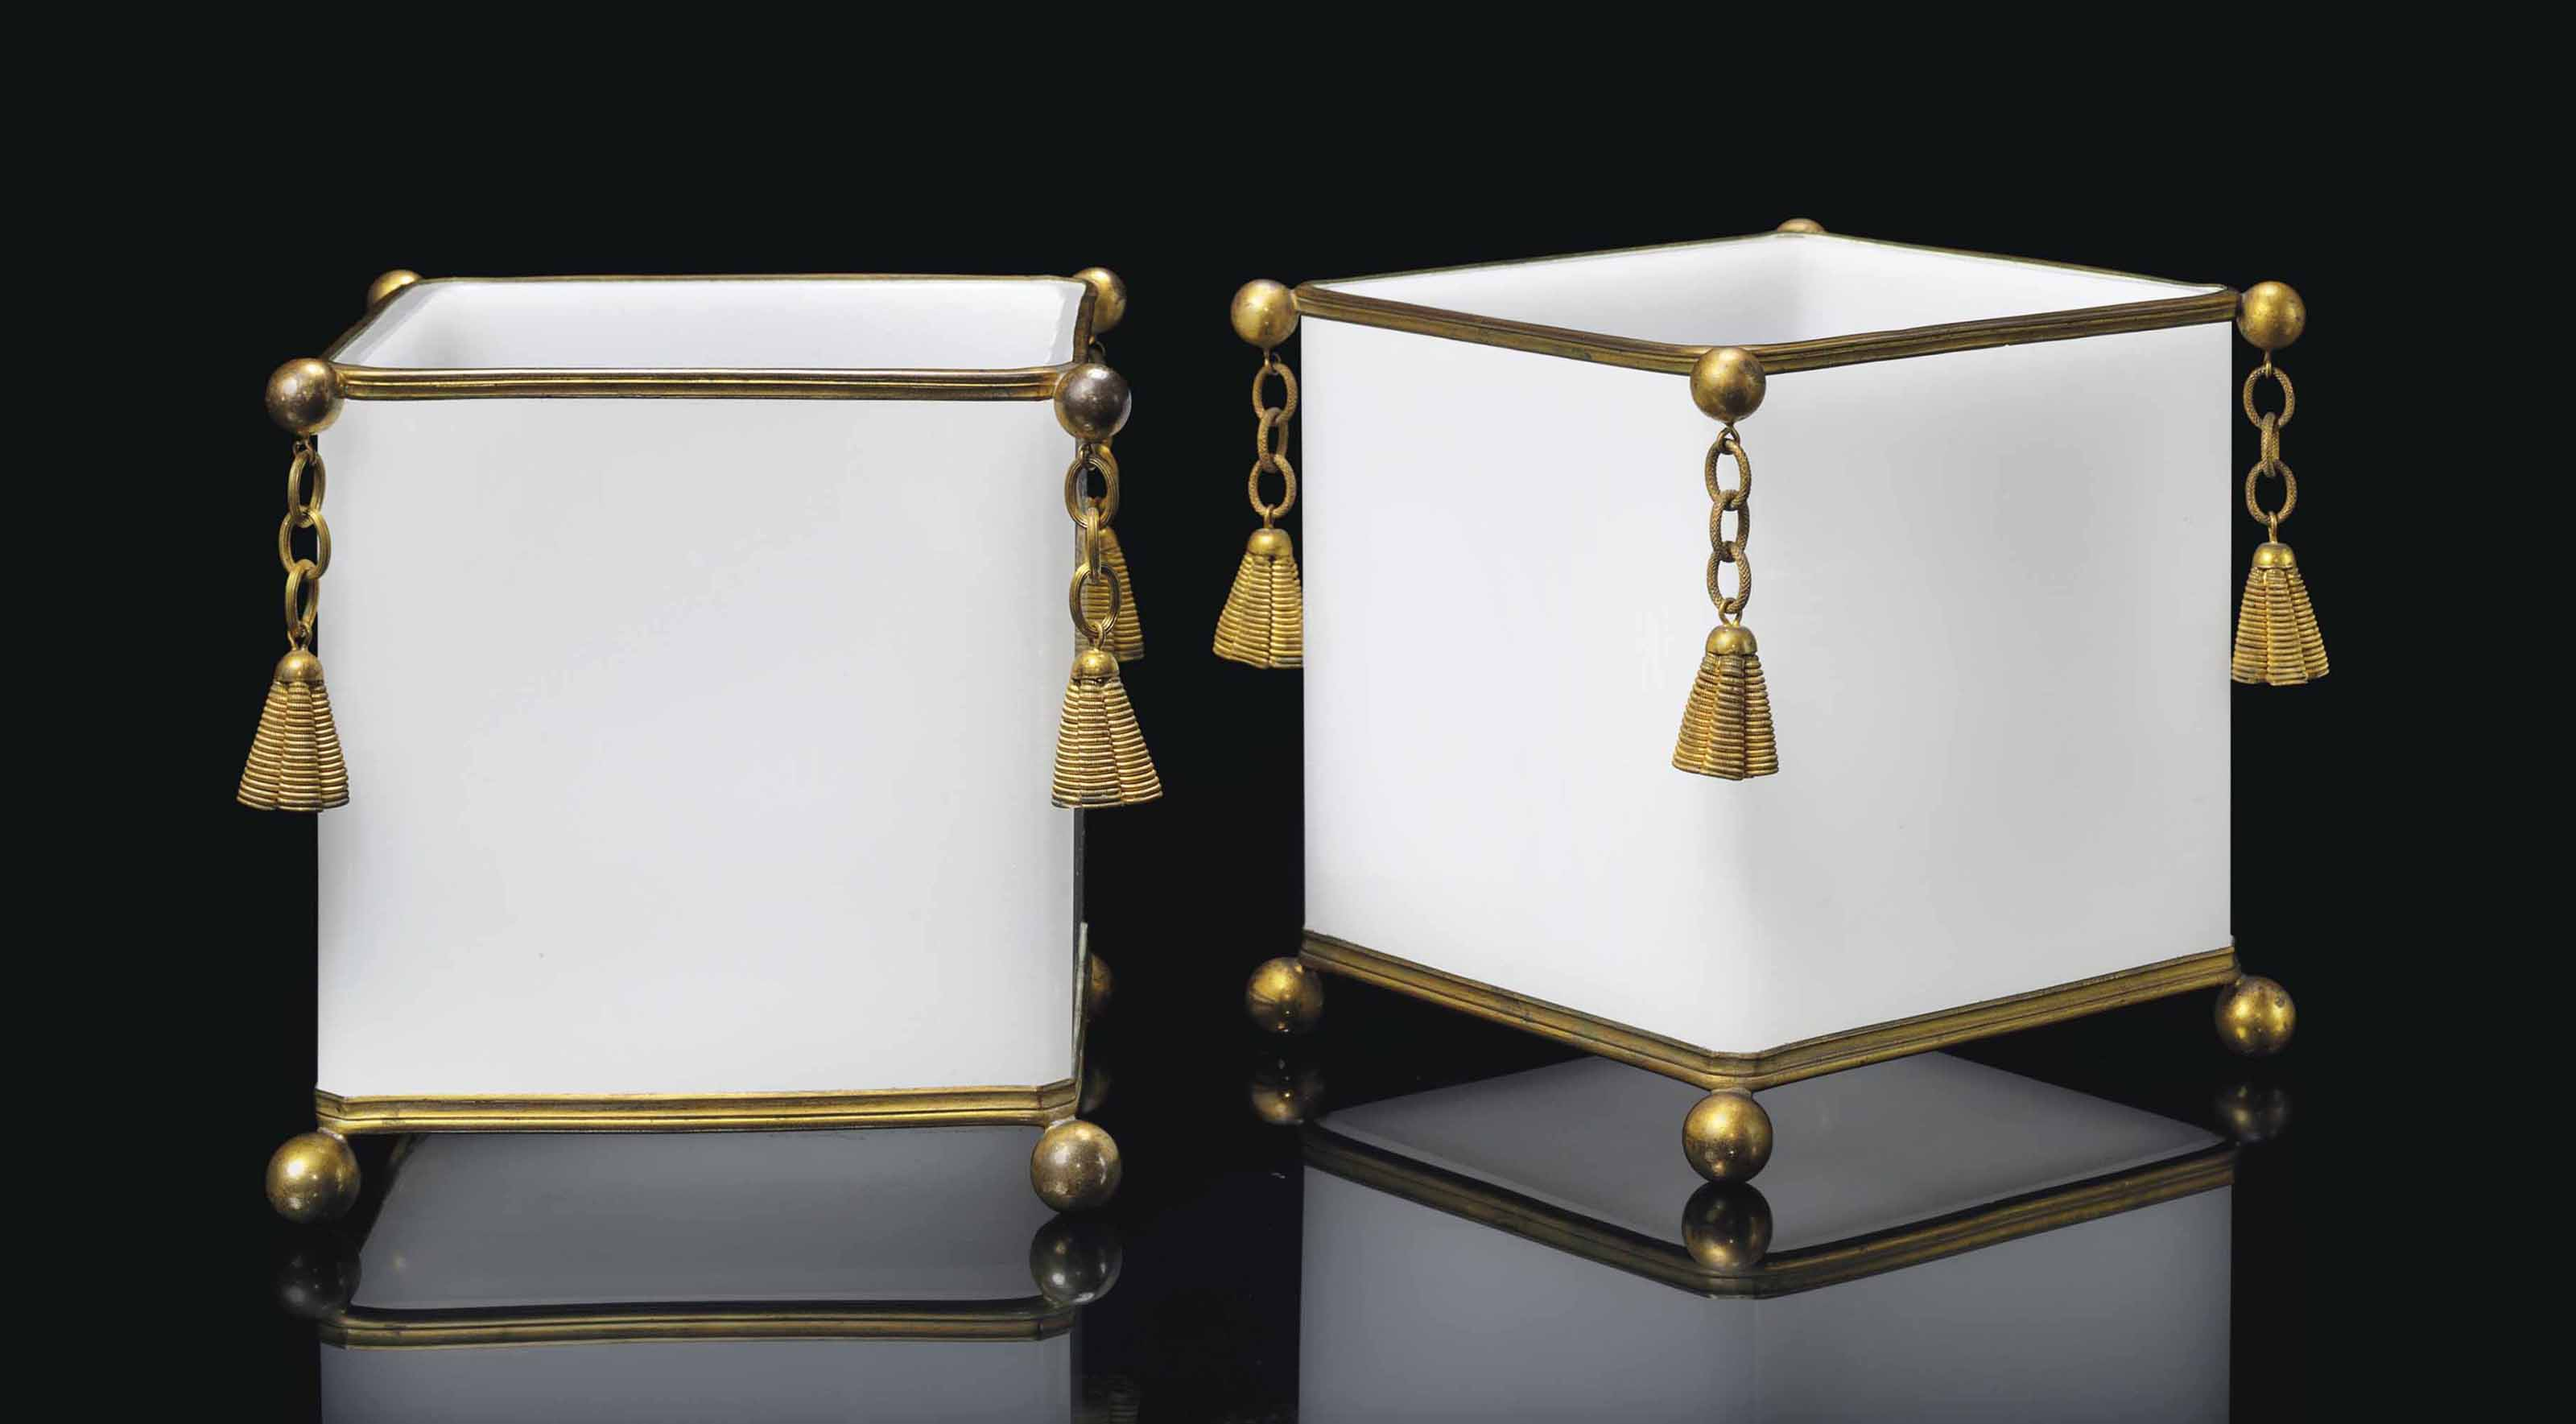 A PAIR OF ORMOLU-MOUNTED BACCA